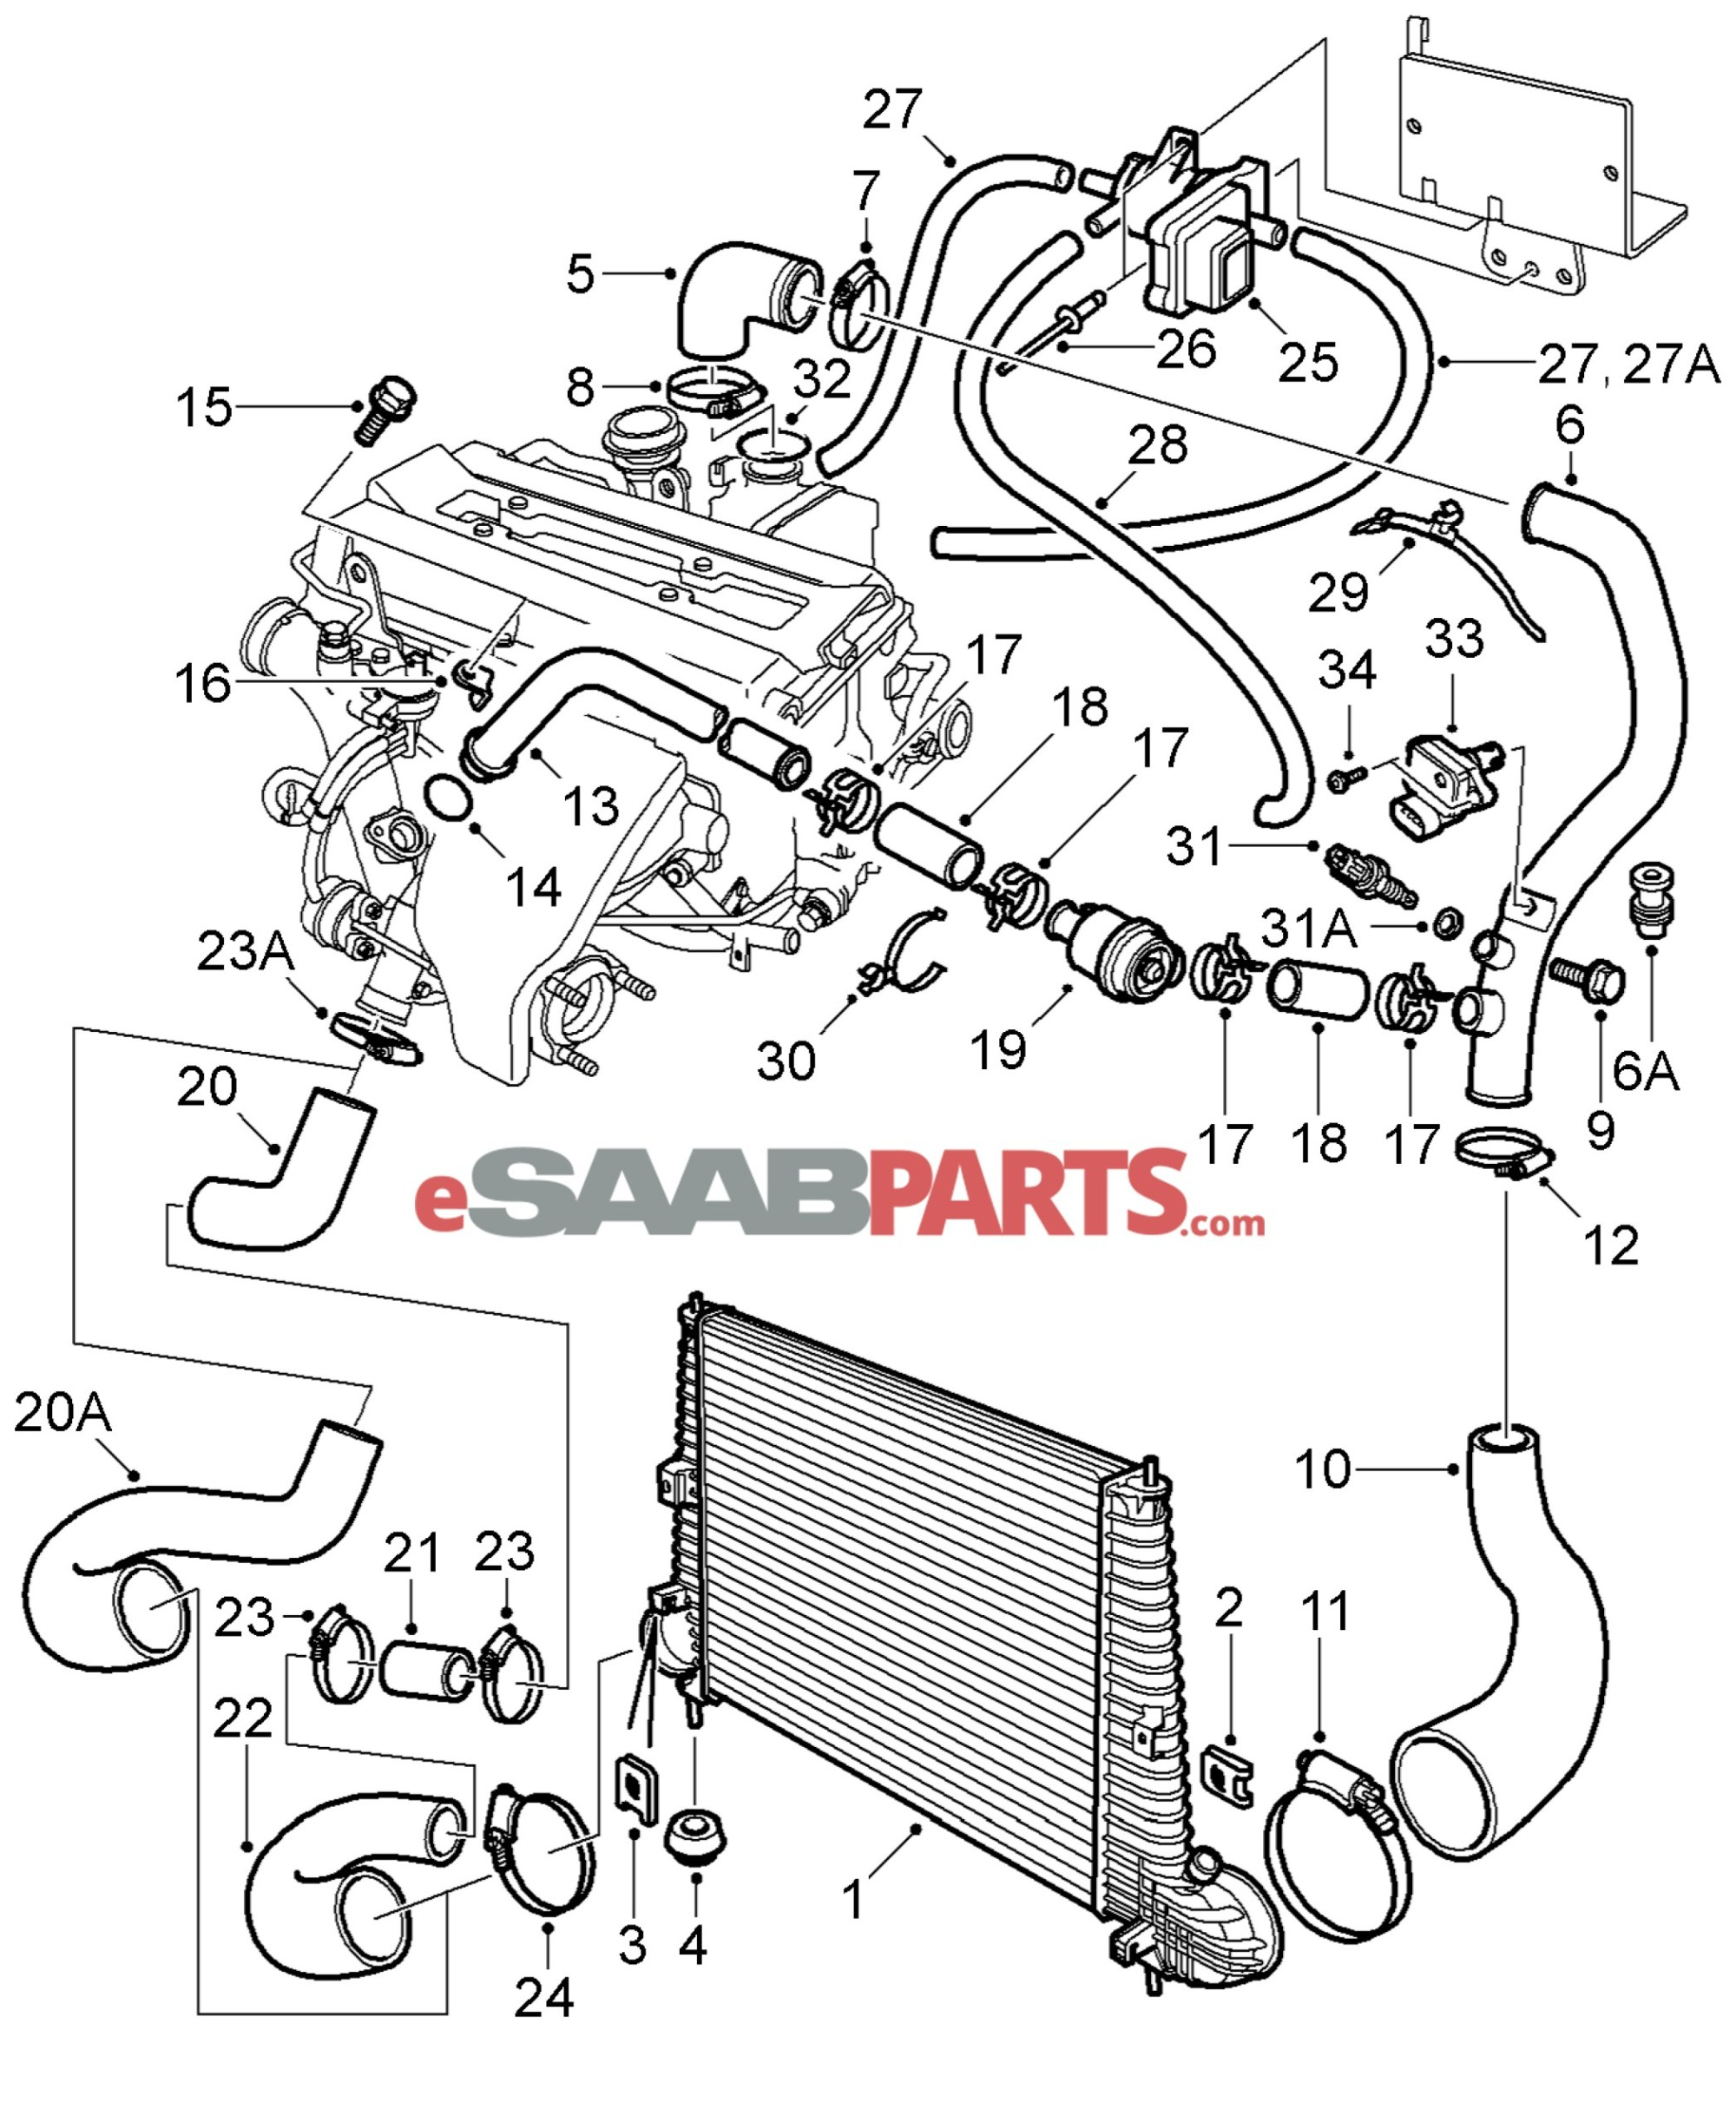 hight resolution of 1997 saab 900 radiator diagram on saab radiator diagram wiring diagram moreover saab 9 3 cooling